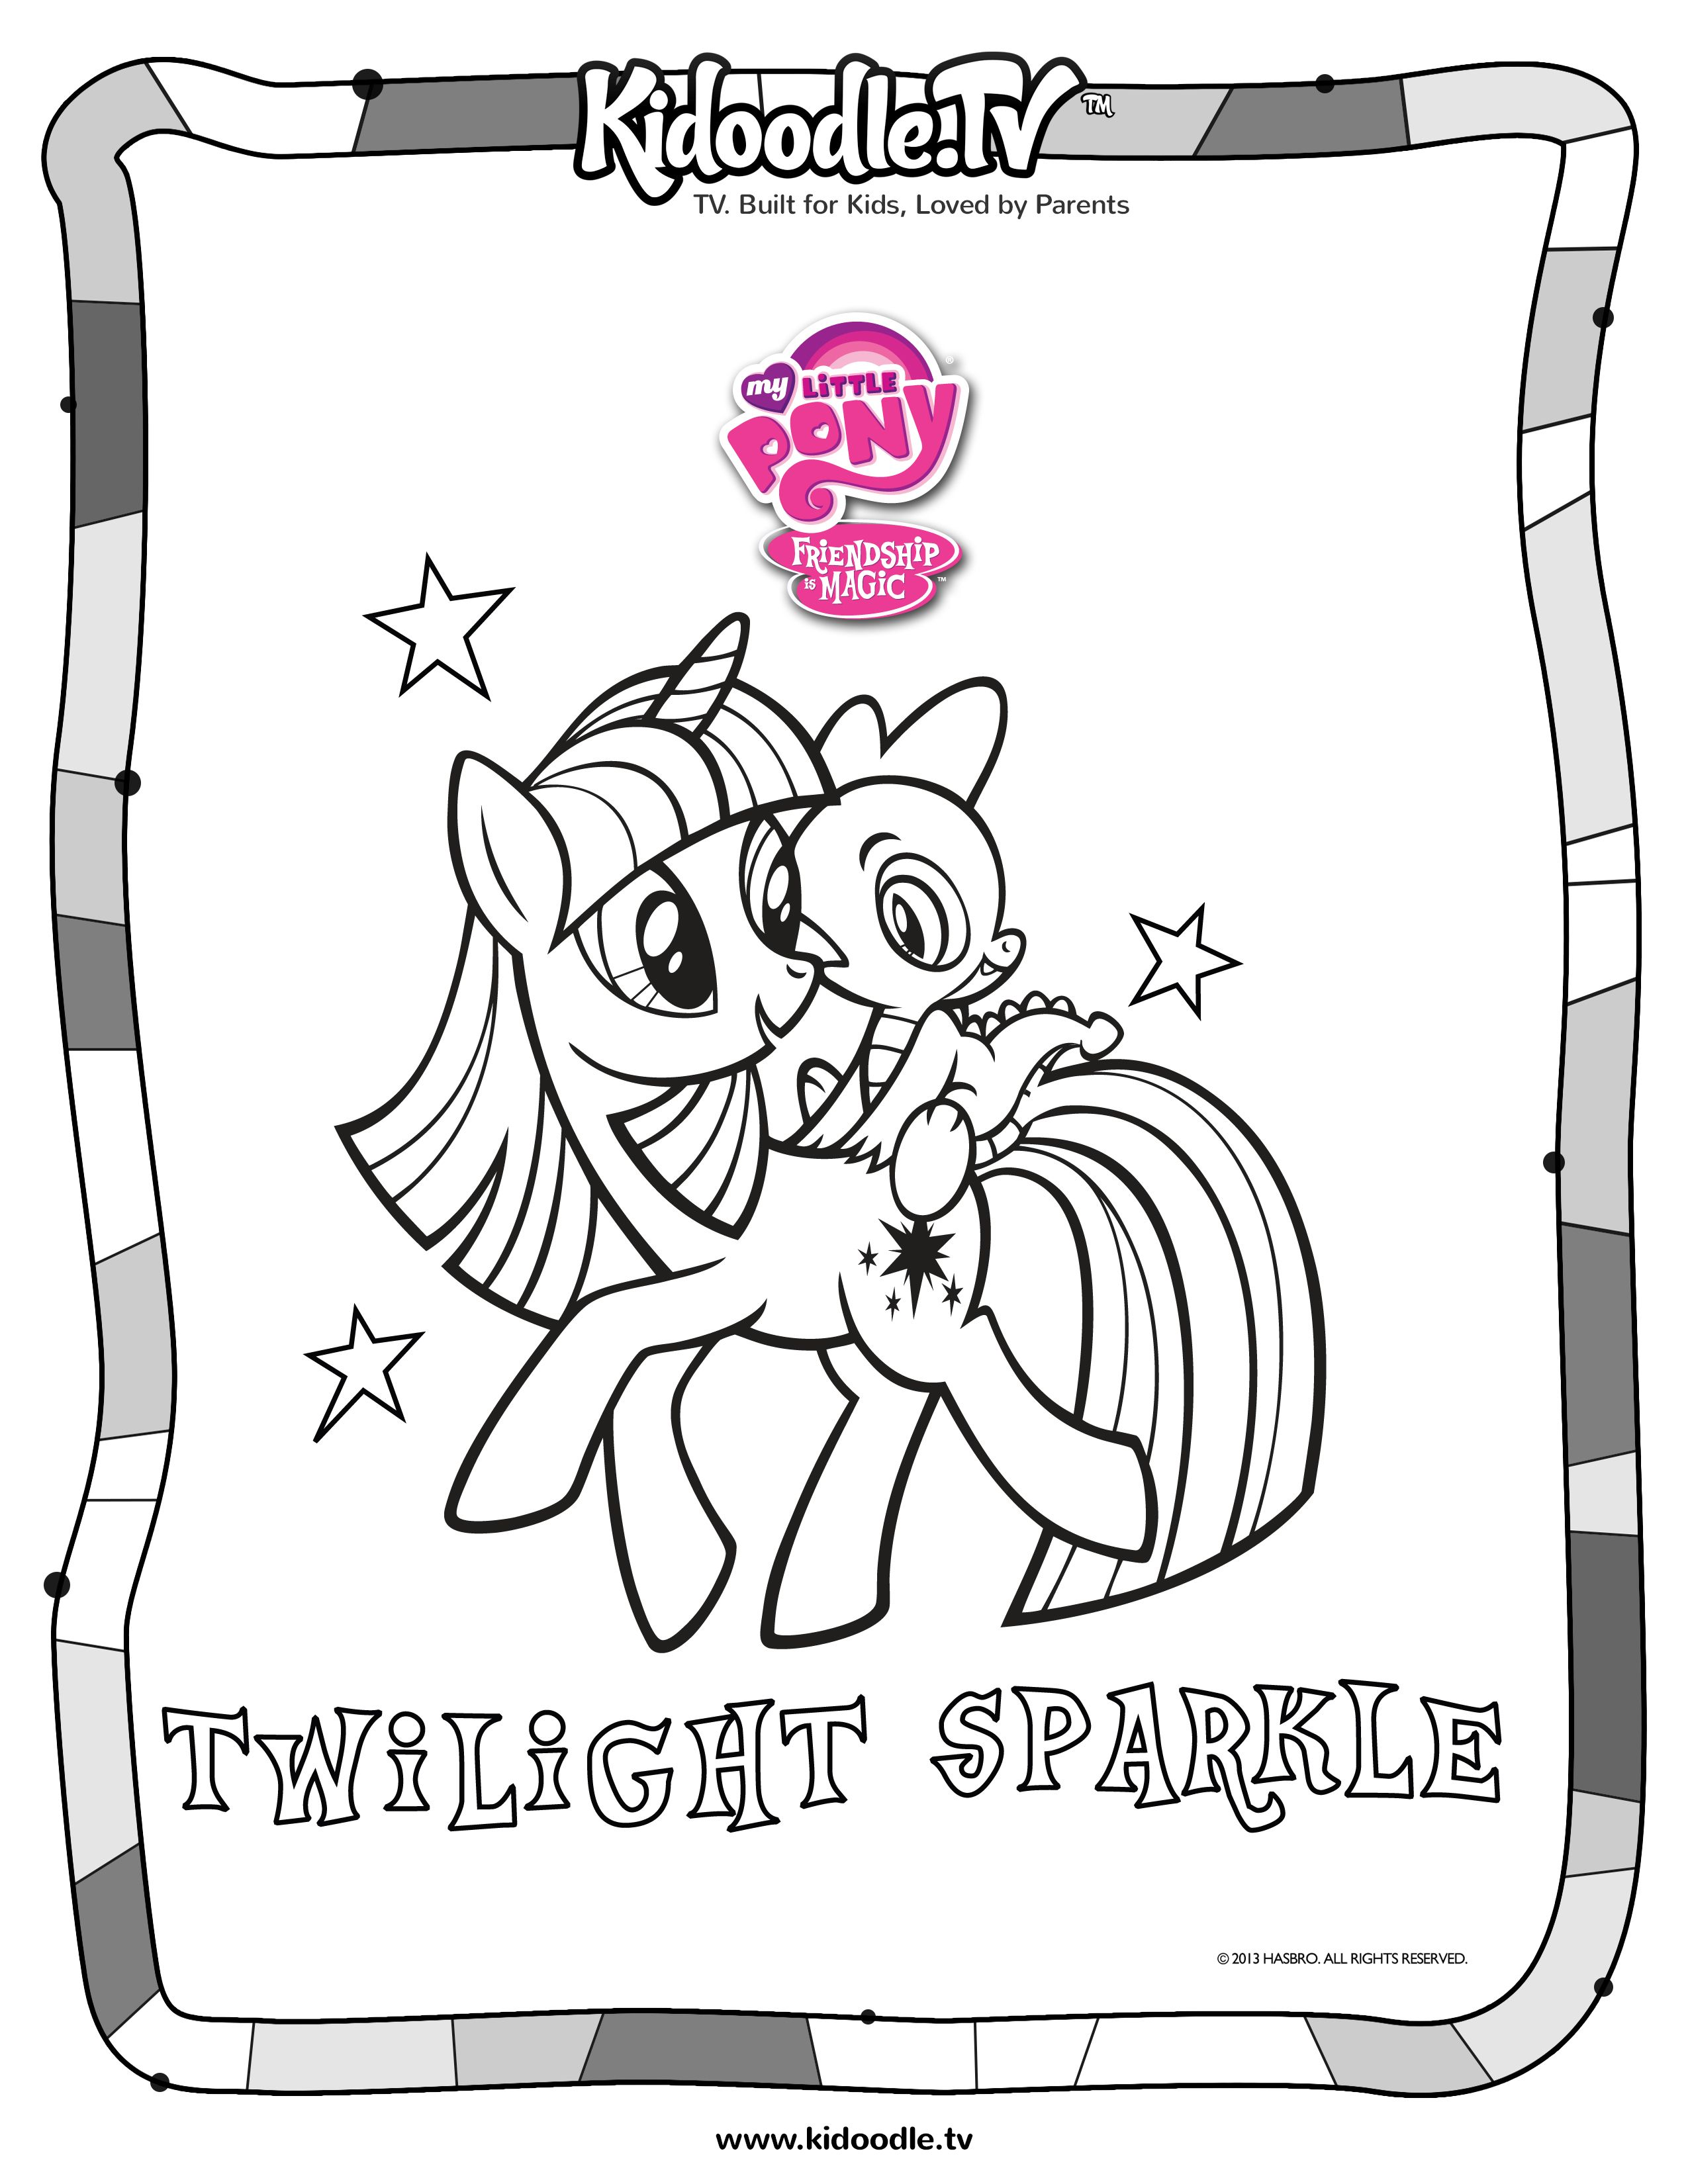 My Little Pony Twilight Sparkle Coloring Sheet from